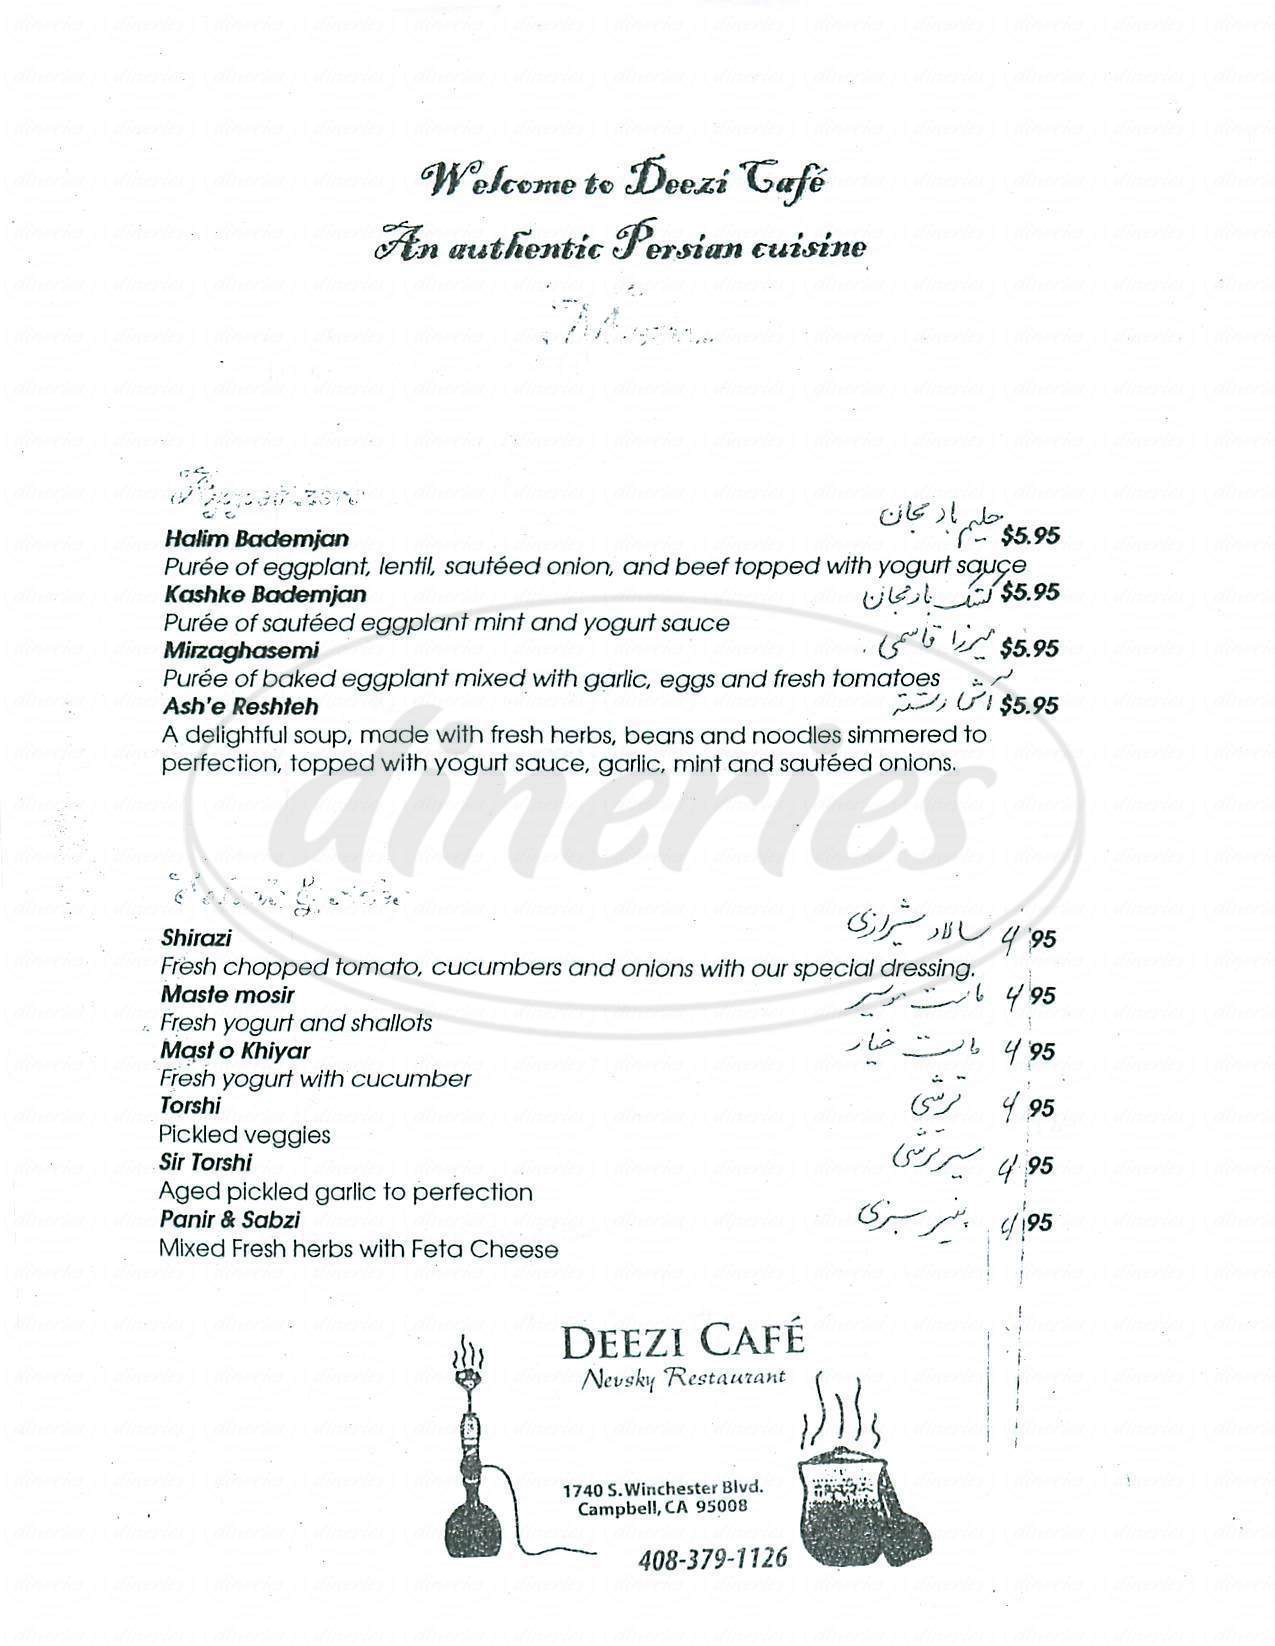 menu for Deezi Cafe Nevsky Restaurant